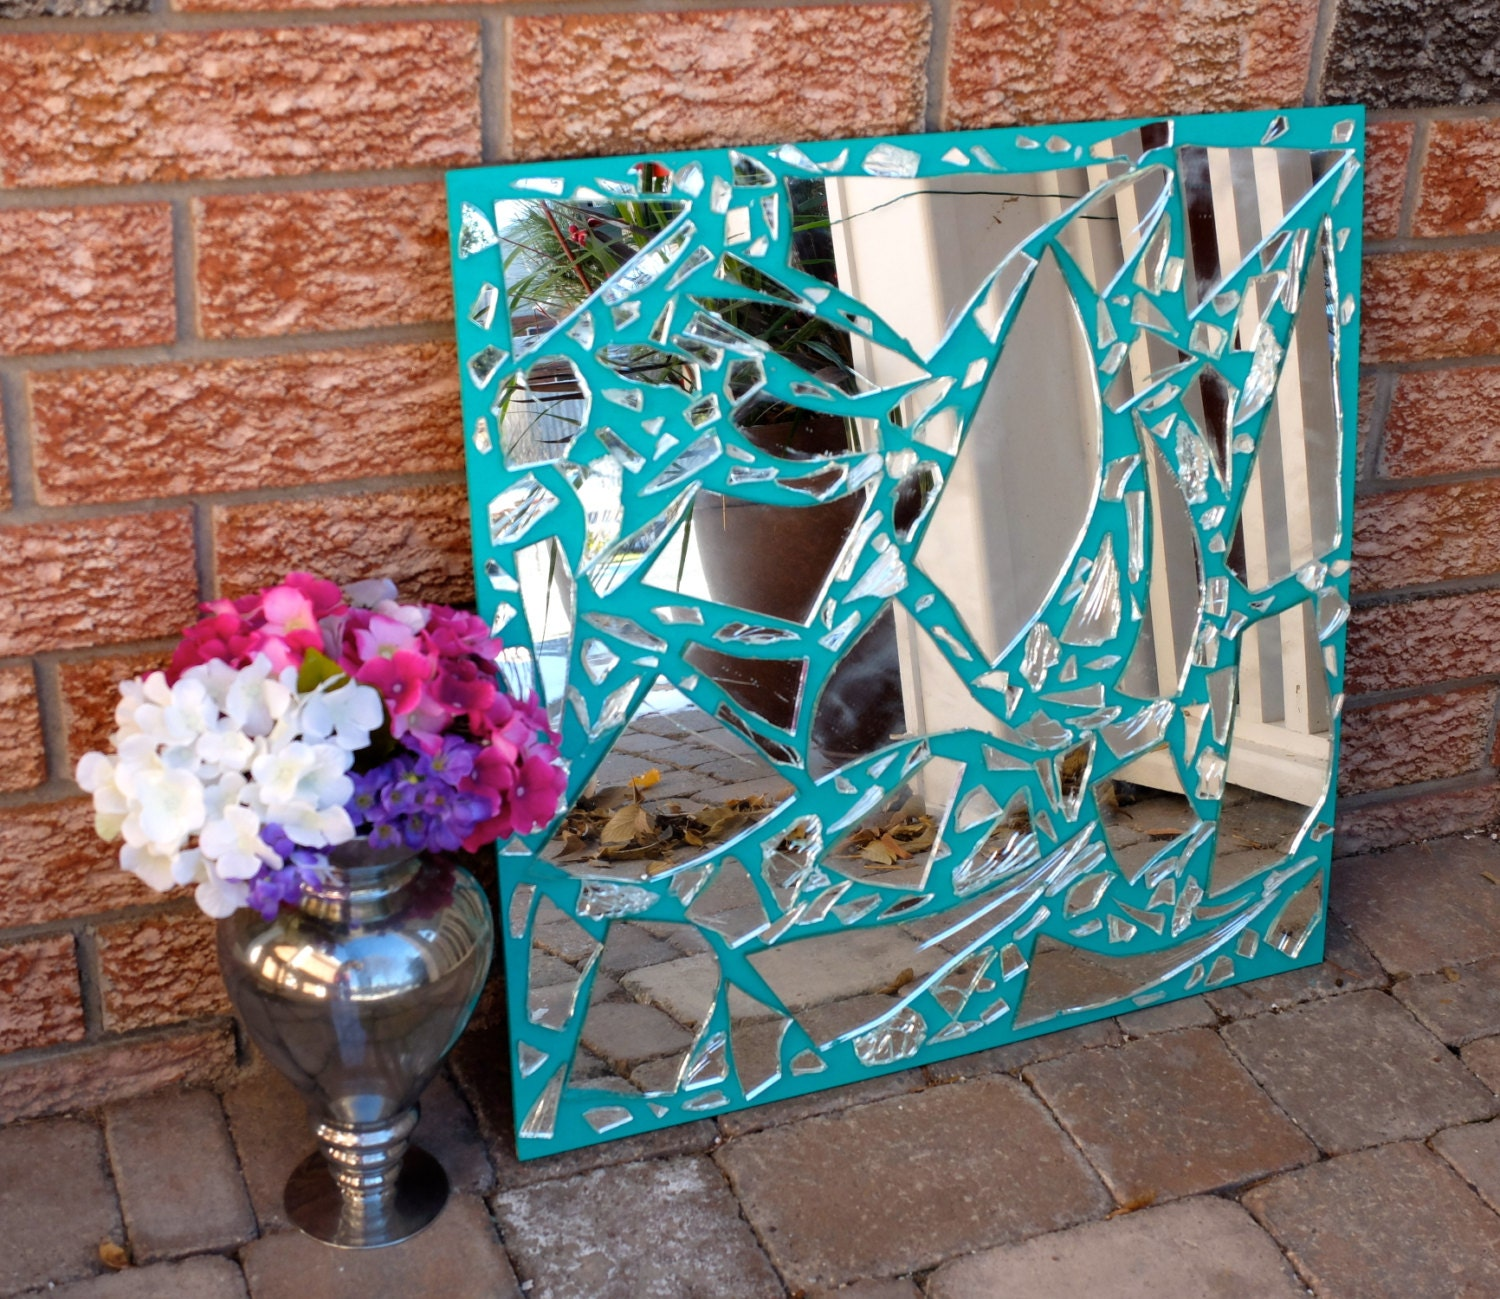 Sale broken mirror home decoration decor centrepiece for Home decor items on sale